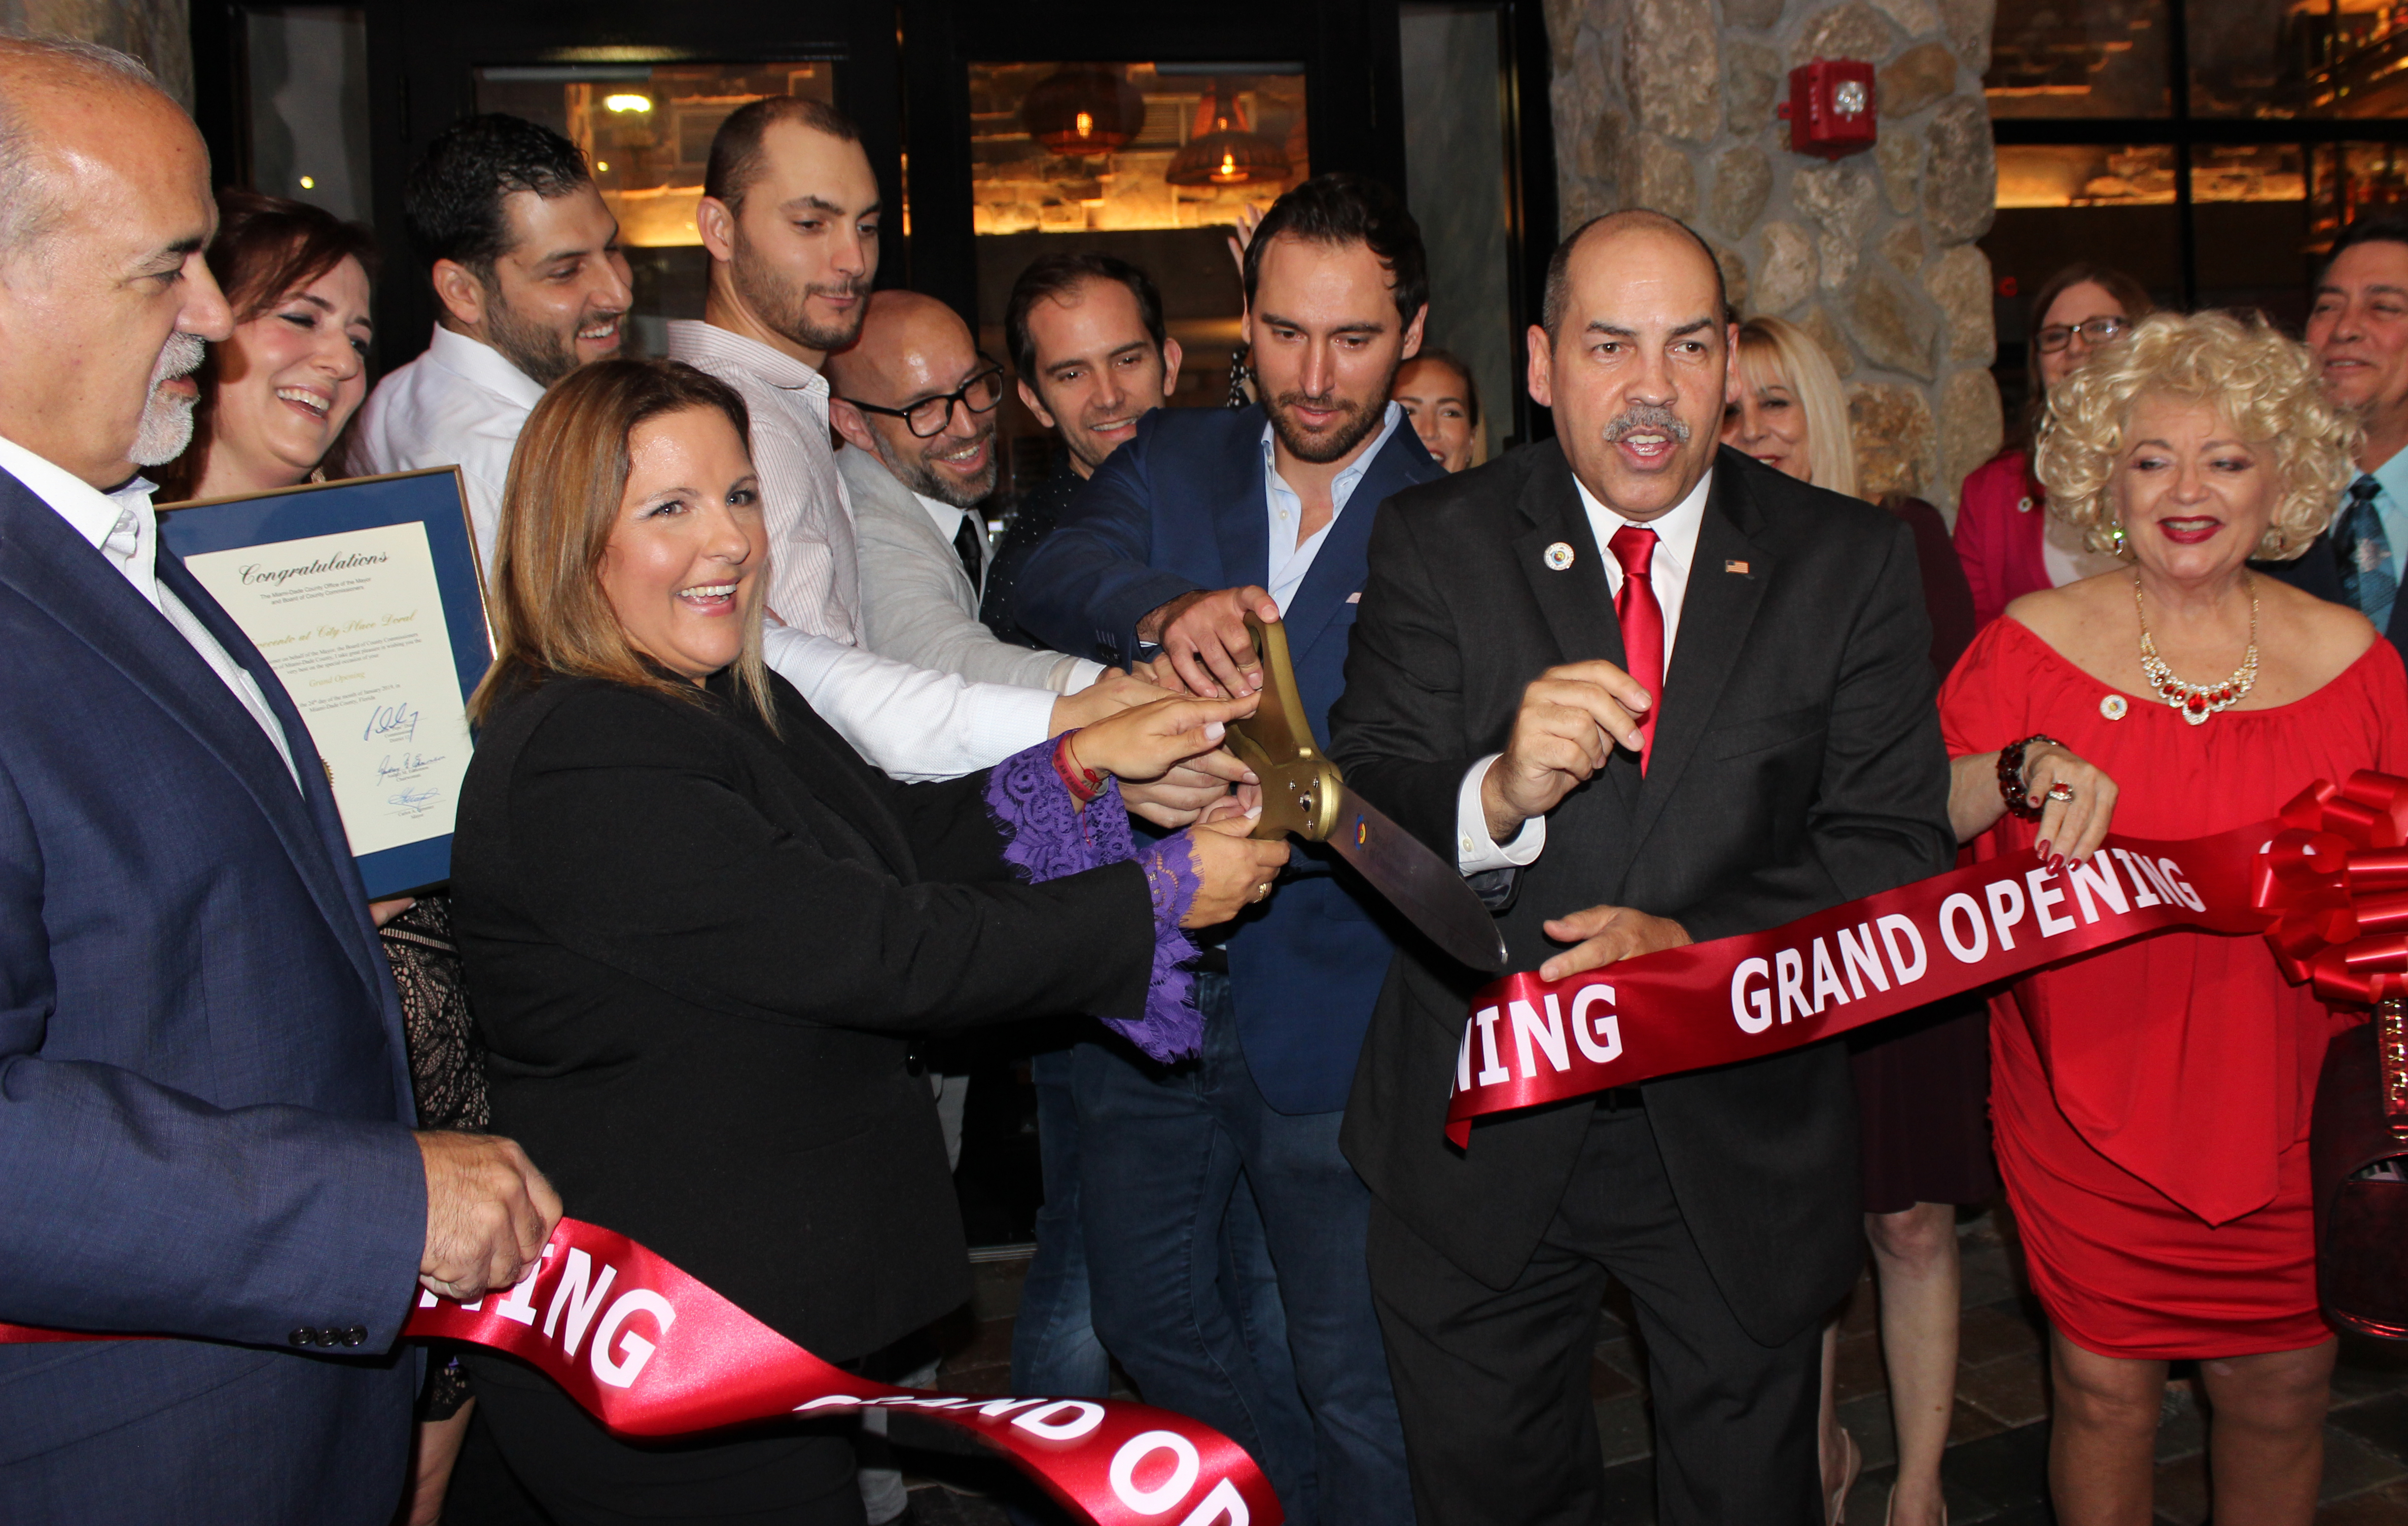 Doral Chamber of Commerce introduces Novecento Grand Opening, ribbon cut and the restaurant open.